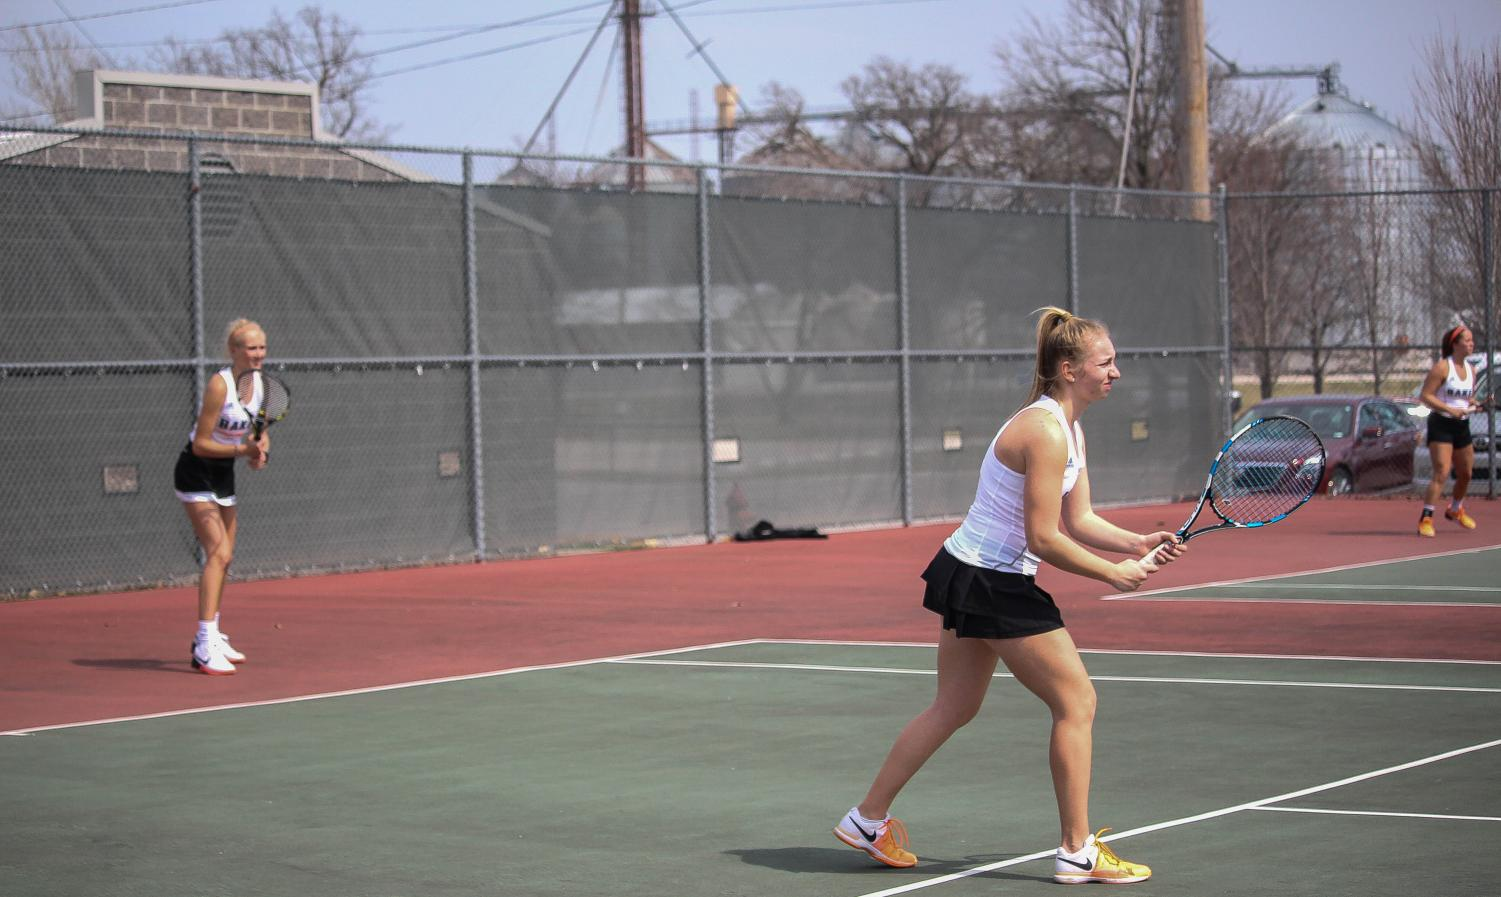 Kayelee Smith and Morgan Francis stand ready as they prepare for a serve in a doubles match against Ottawa University.